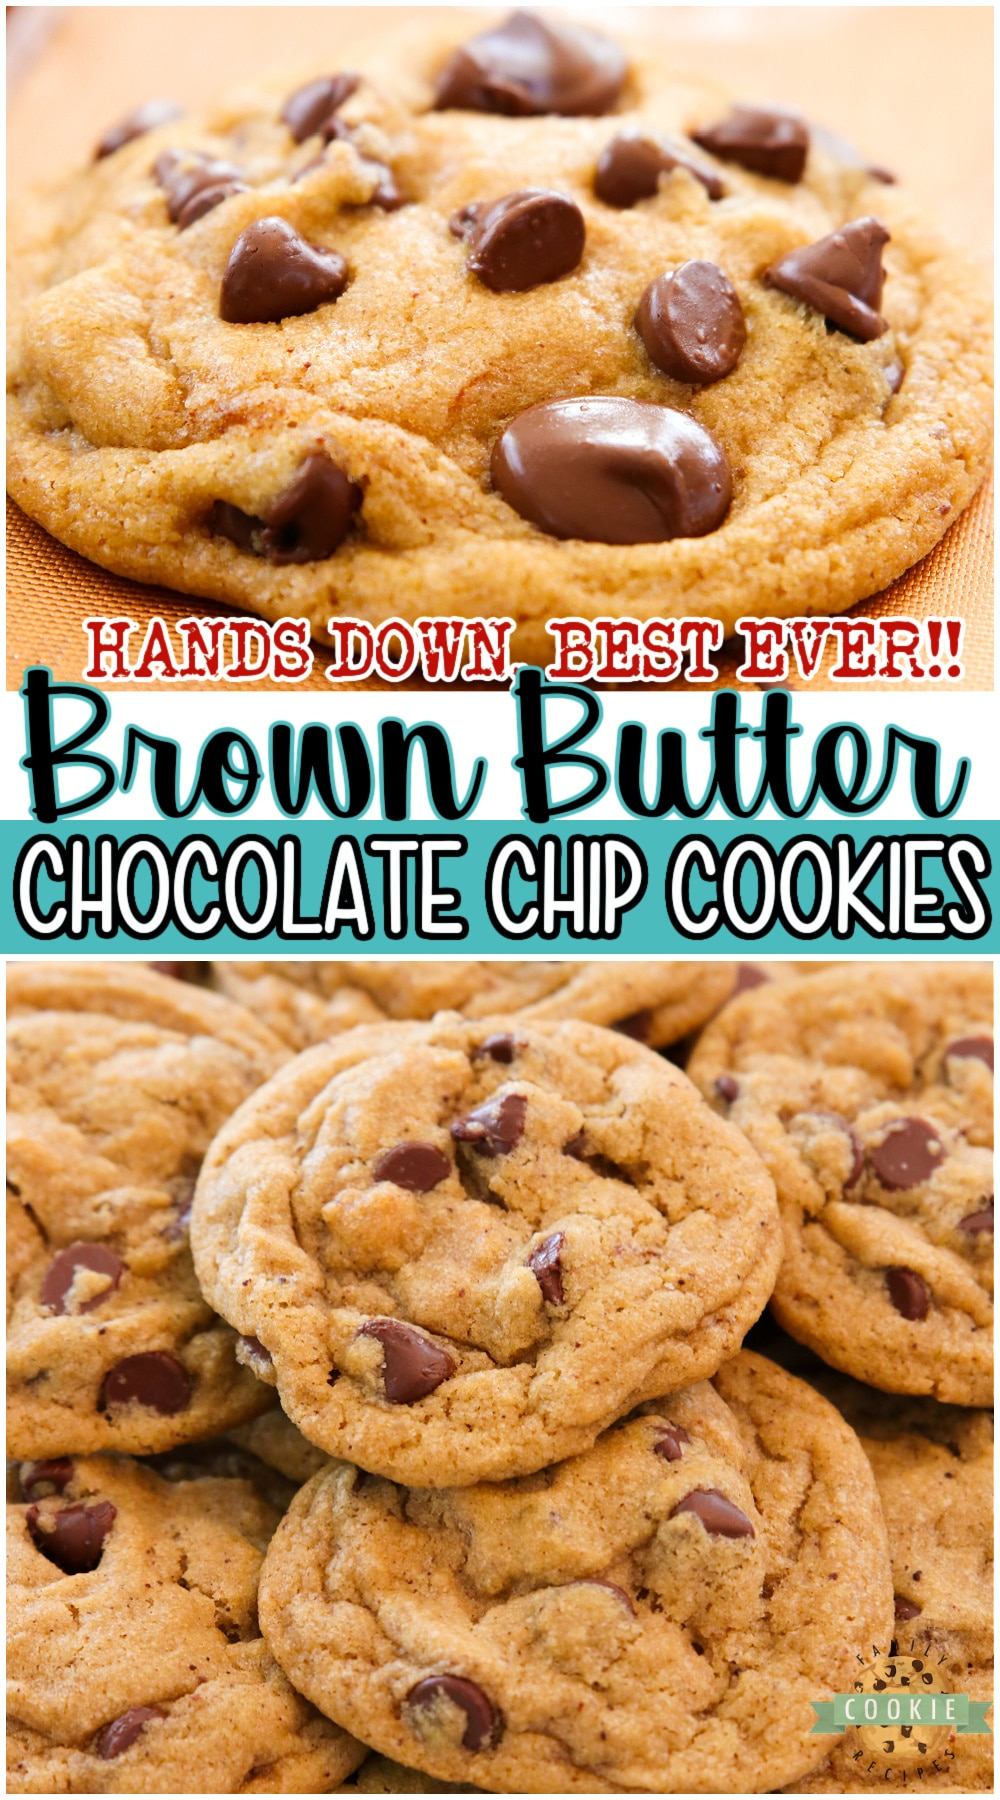 Incredible Brown Butter Chocolate Chip Cookies with the BEST flavor ever! These'll be your NEW FAVORITE chocolate chip cookie recipe; the brown butter adds a delicious caramel flavor that everyone loves. #cookies #butter #brownbutter #baking #easyrecipe from BUTTER WITH A SIDE OF BREAD via @buttergirls